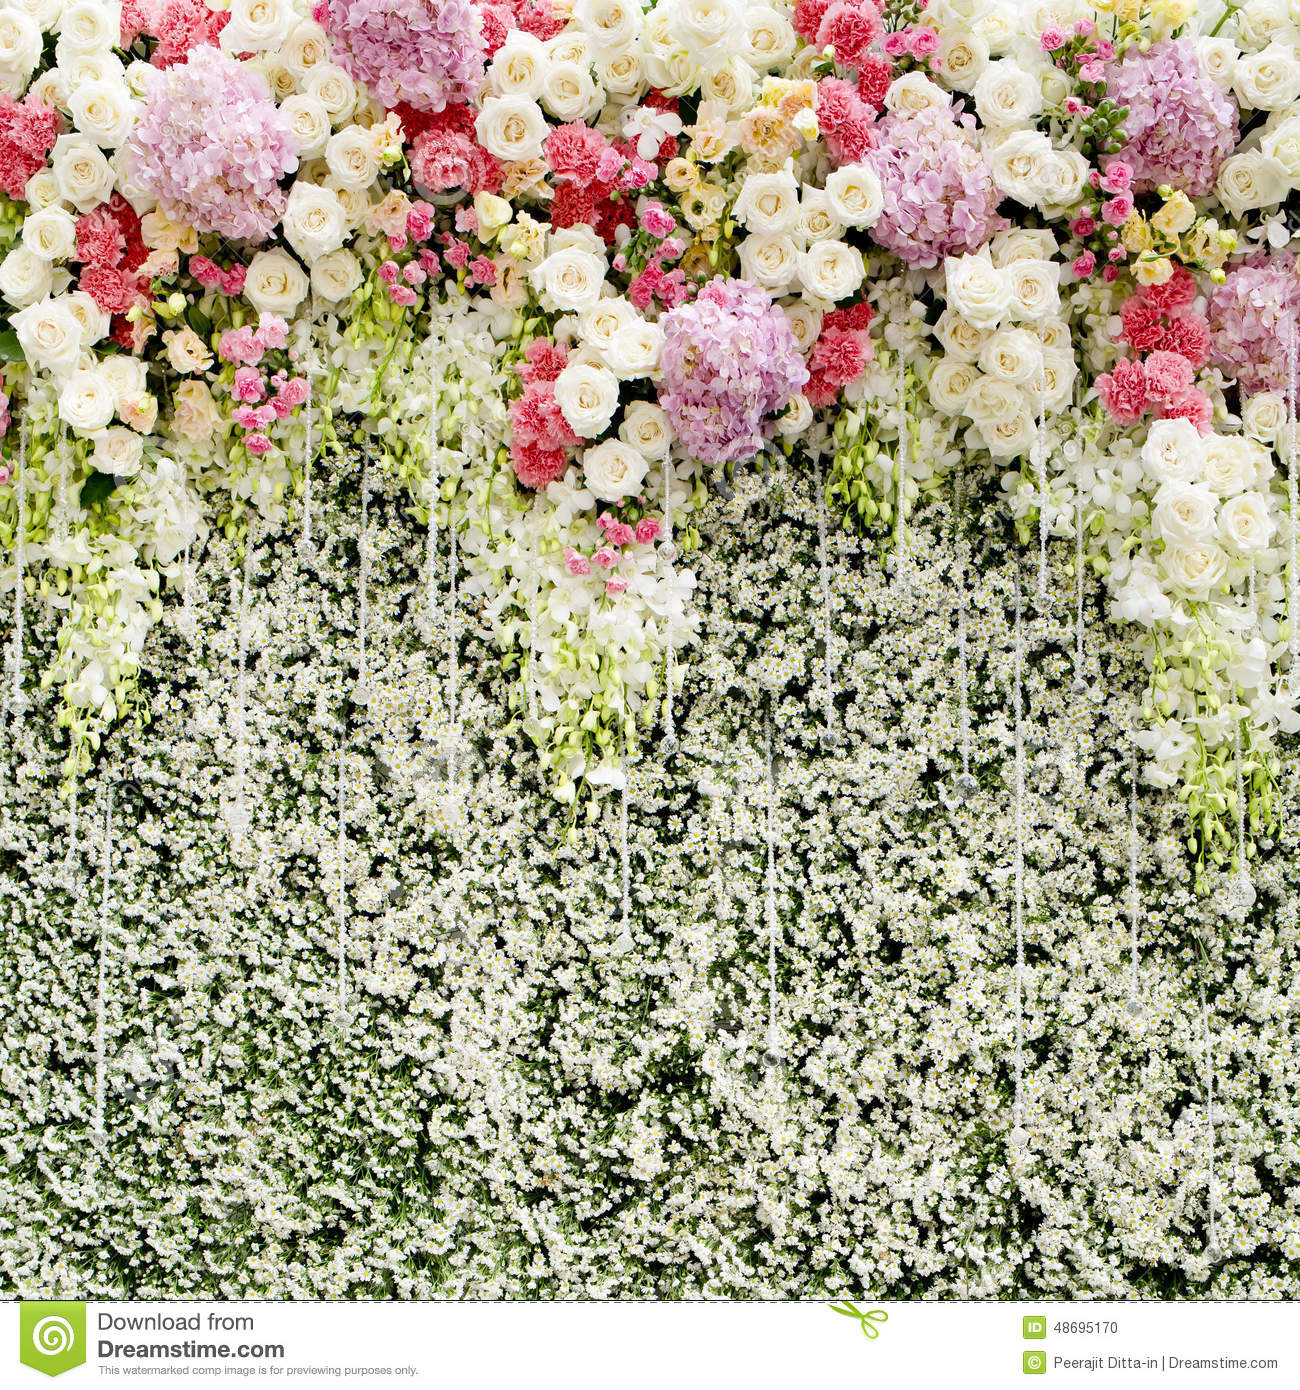 Colorful Flowers With Green Wall For Wedding Backdrop Stock Image 48